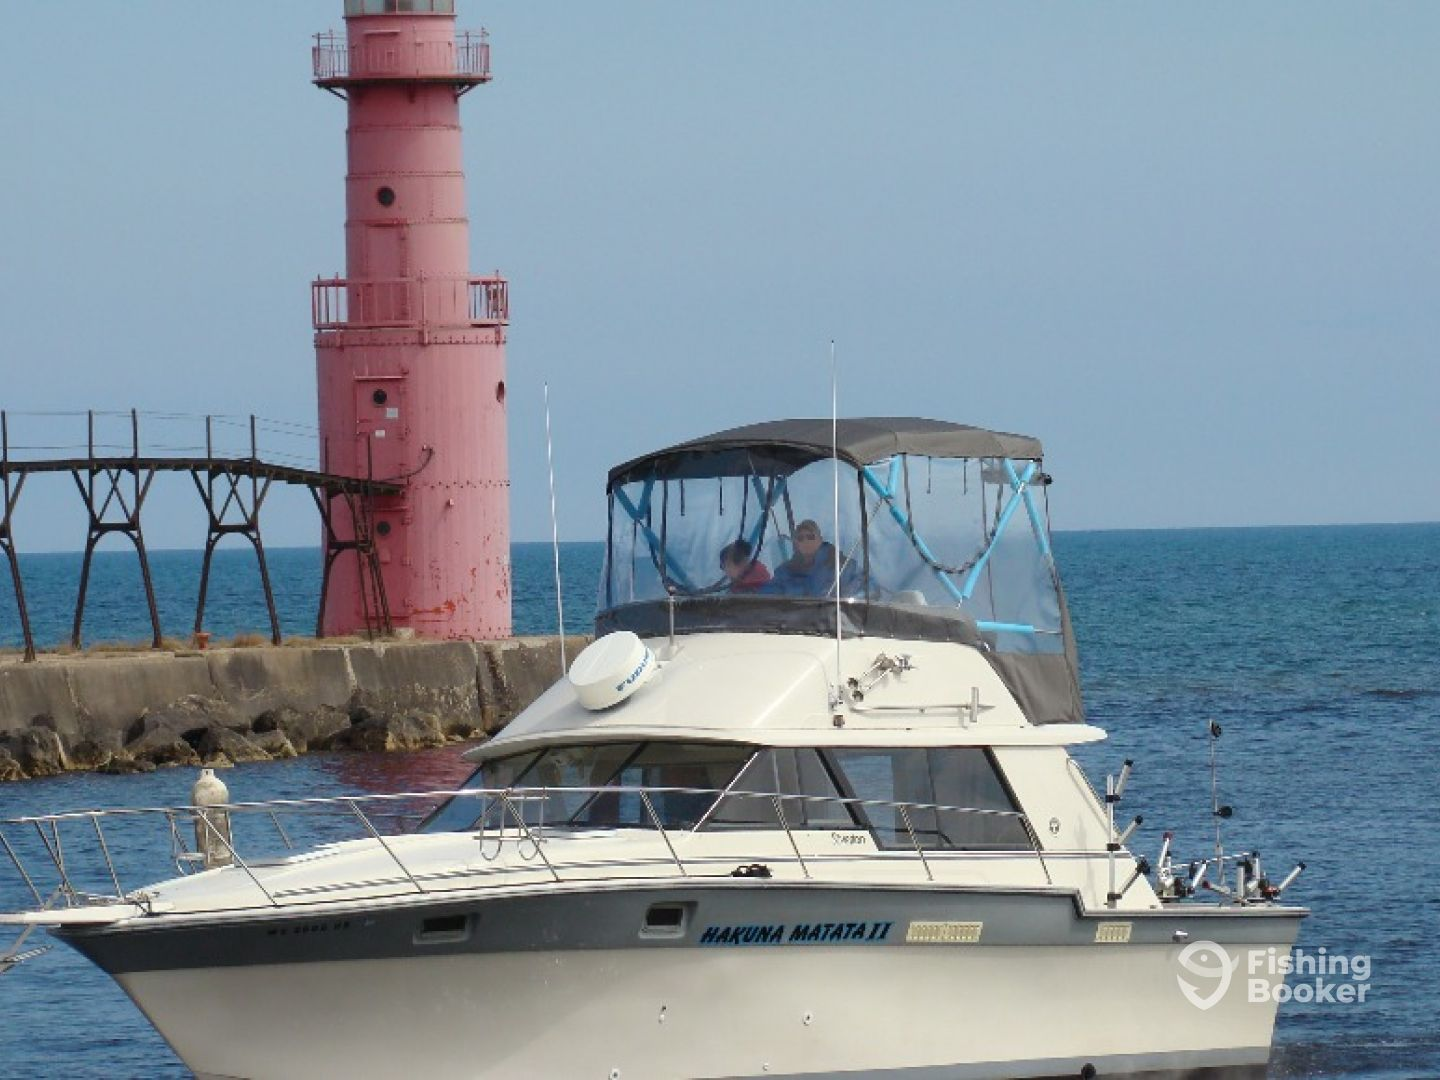 Hakuna matata charters algoma wi fishingbooker for Algoma fishing charters